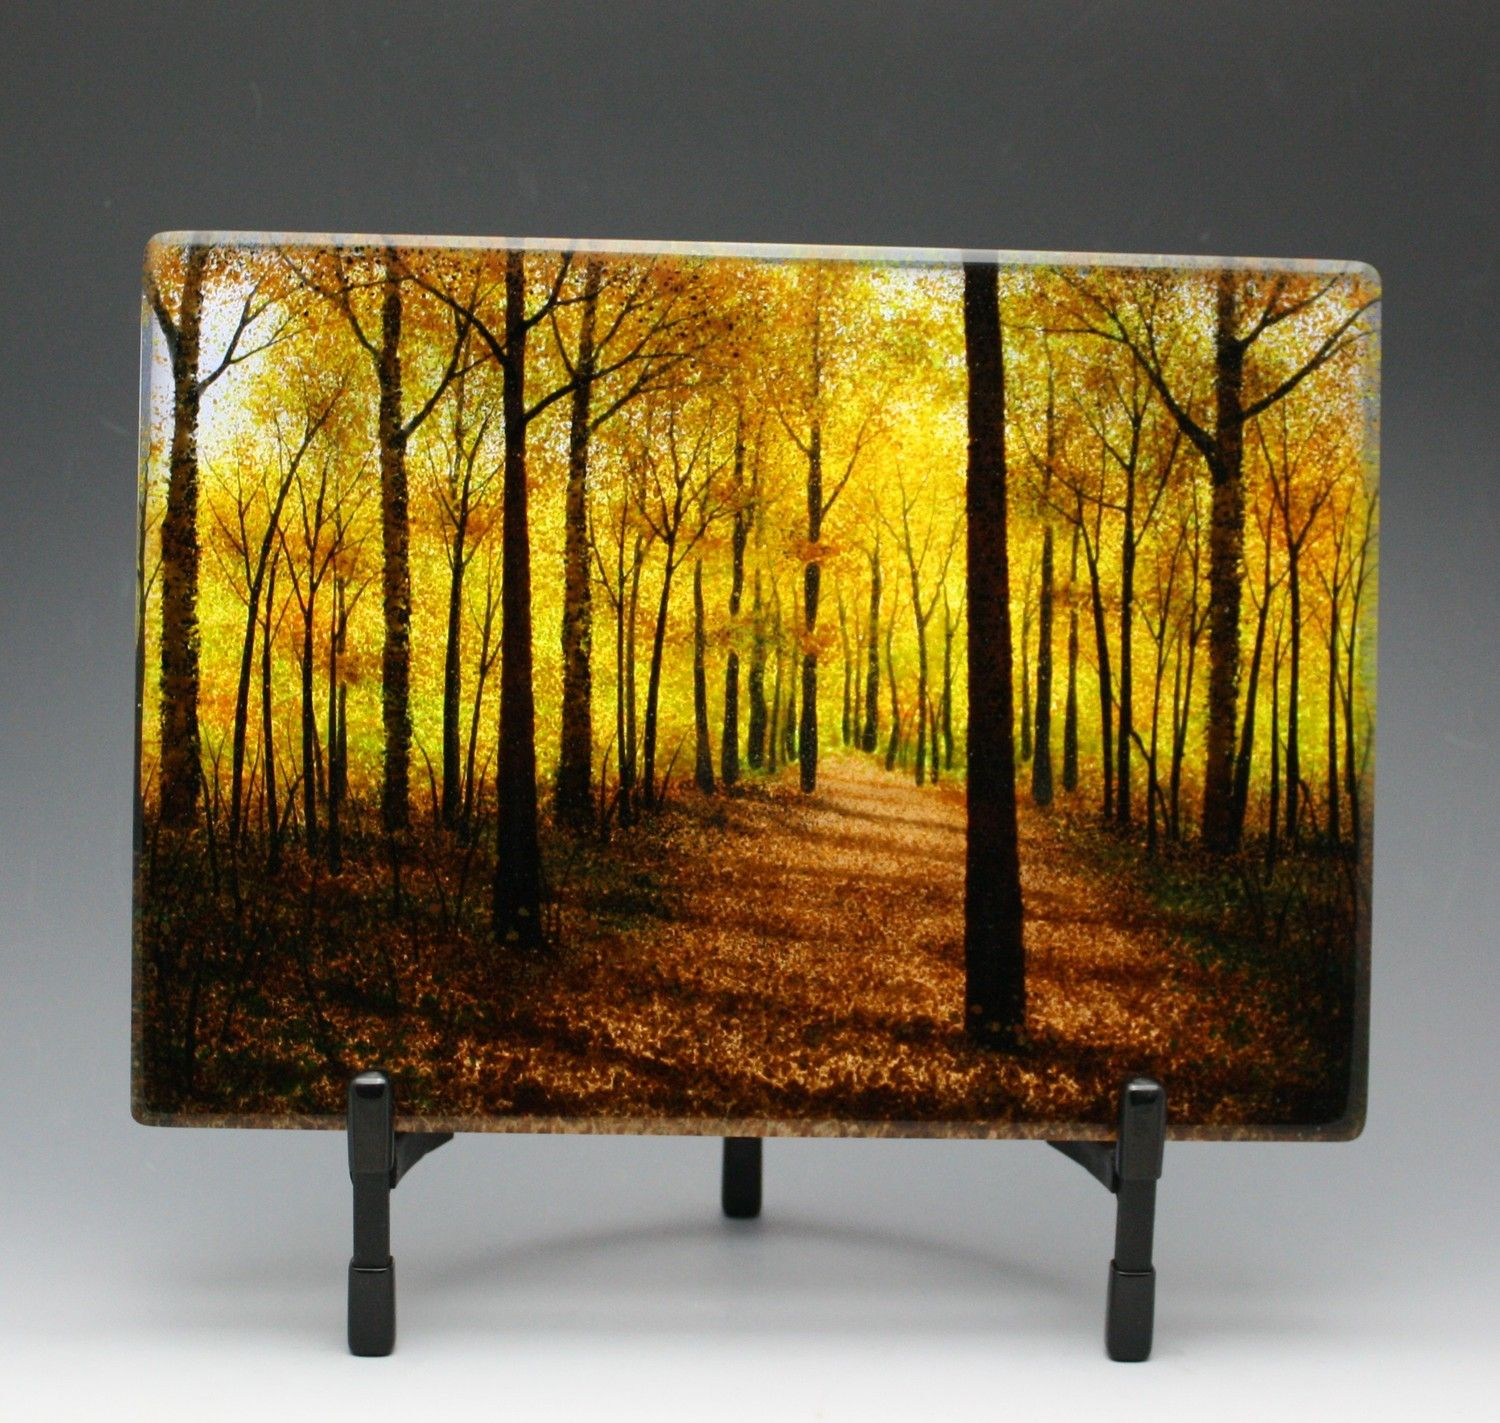 Fused Glass | glass art | Pinterest | Glass and Simple projects